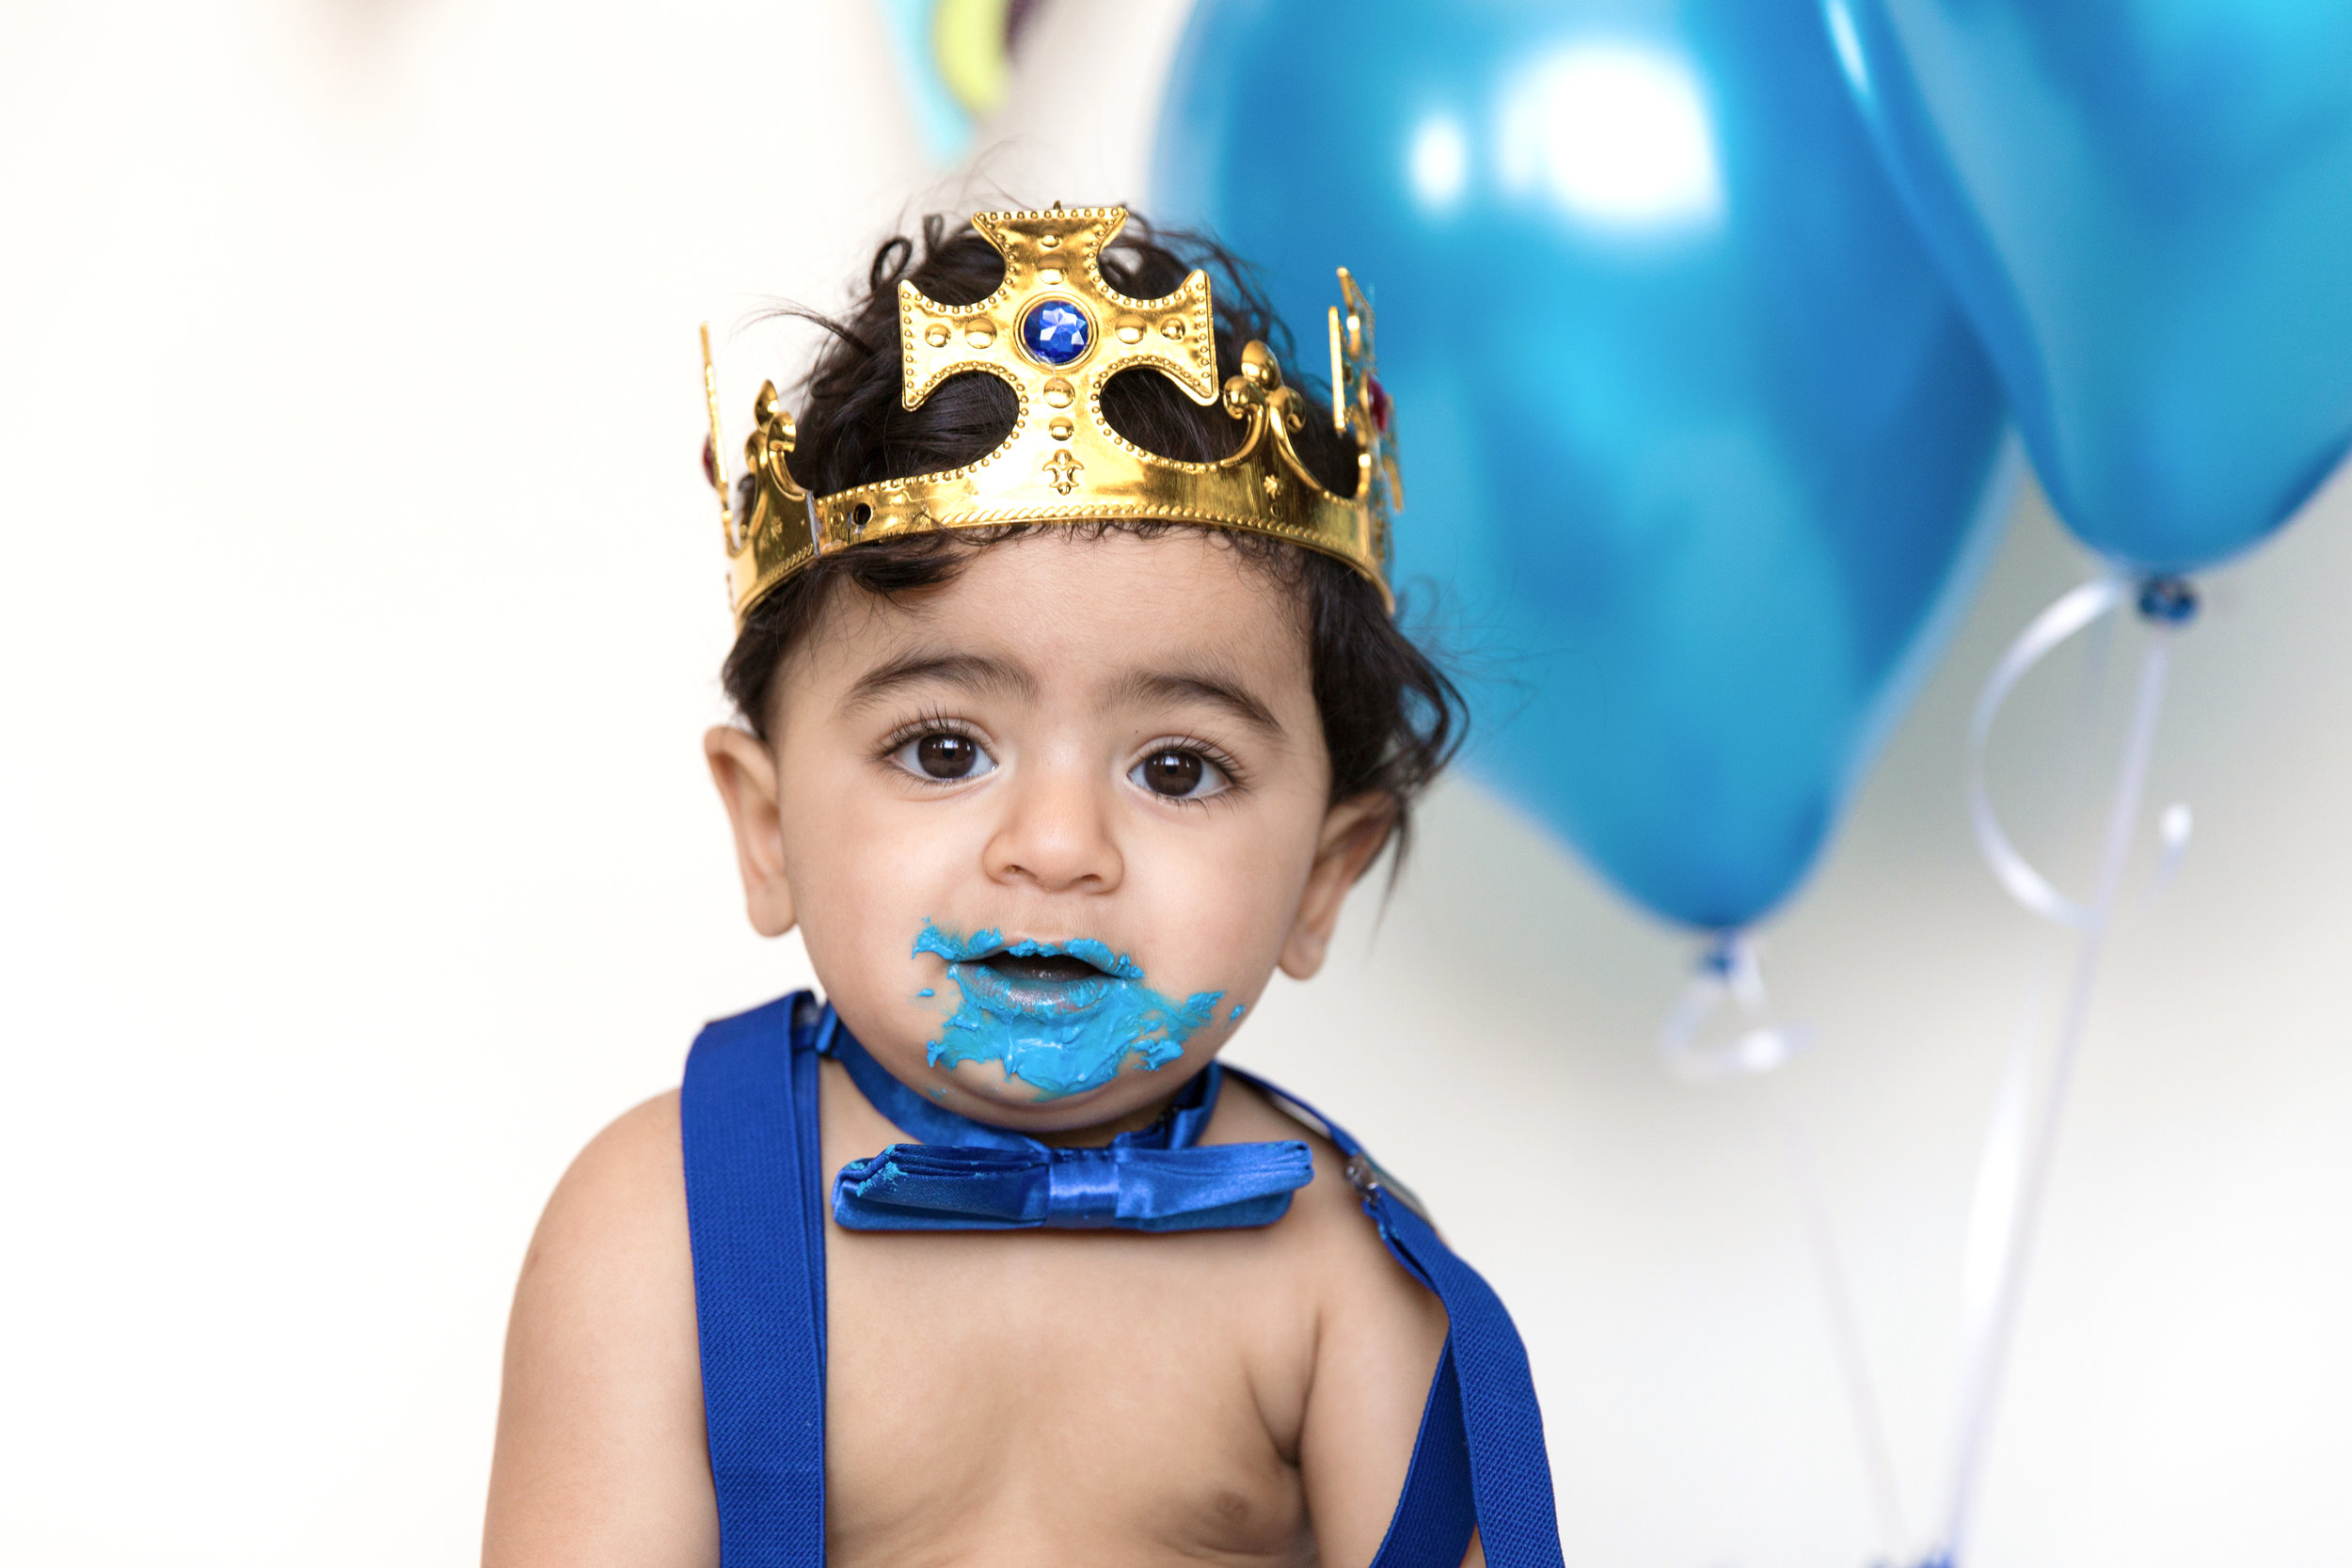 Little boy is covered in cake. Cakesmash photoshoot. Calgary Photographer. Milashka Photography